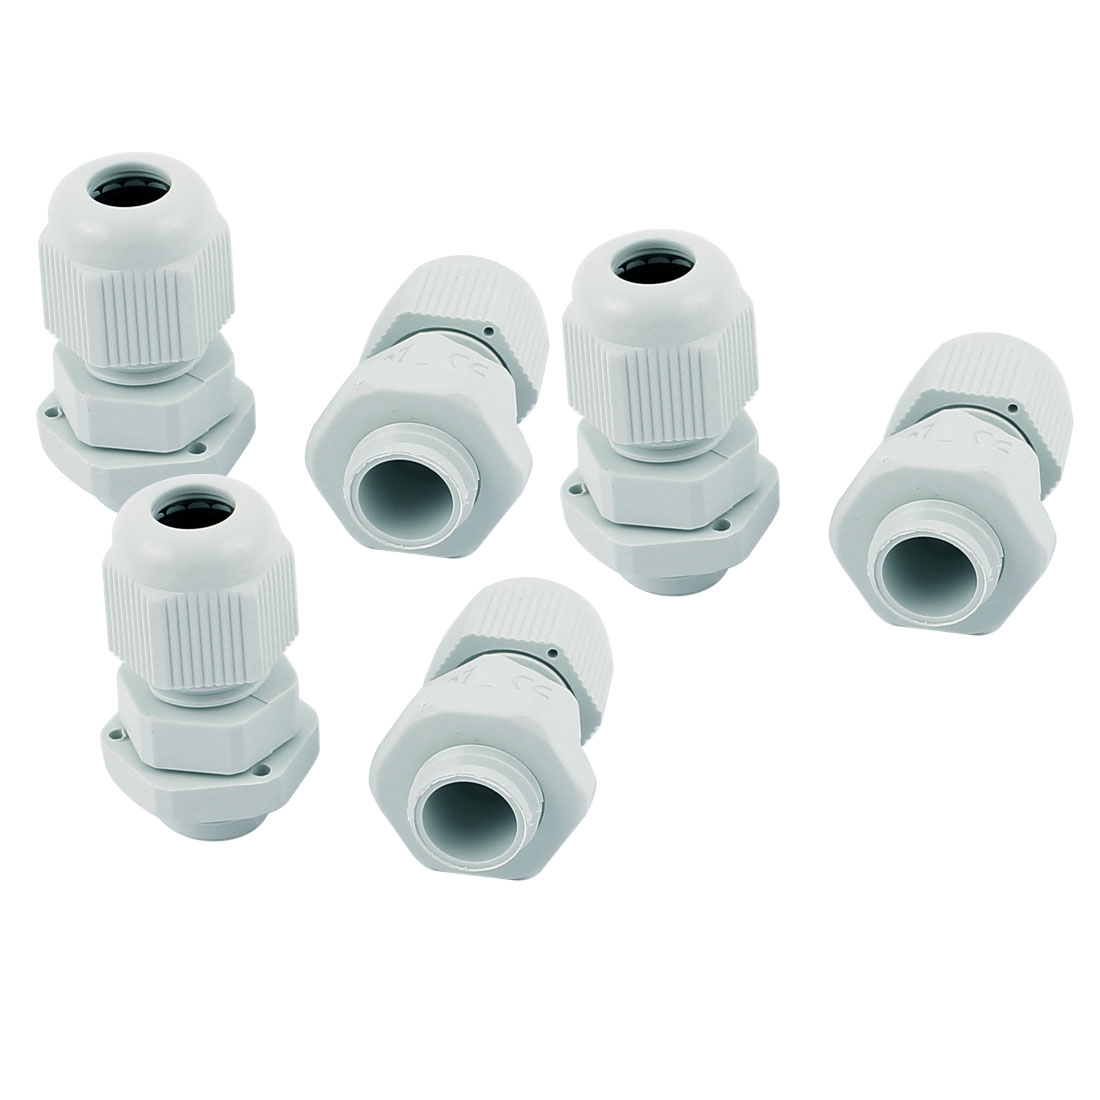 PG7 3-6.5mm Waterproof Cable Glands Wire Cord Connect Connector Adapter White 6 PCS